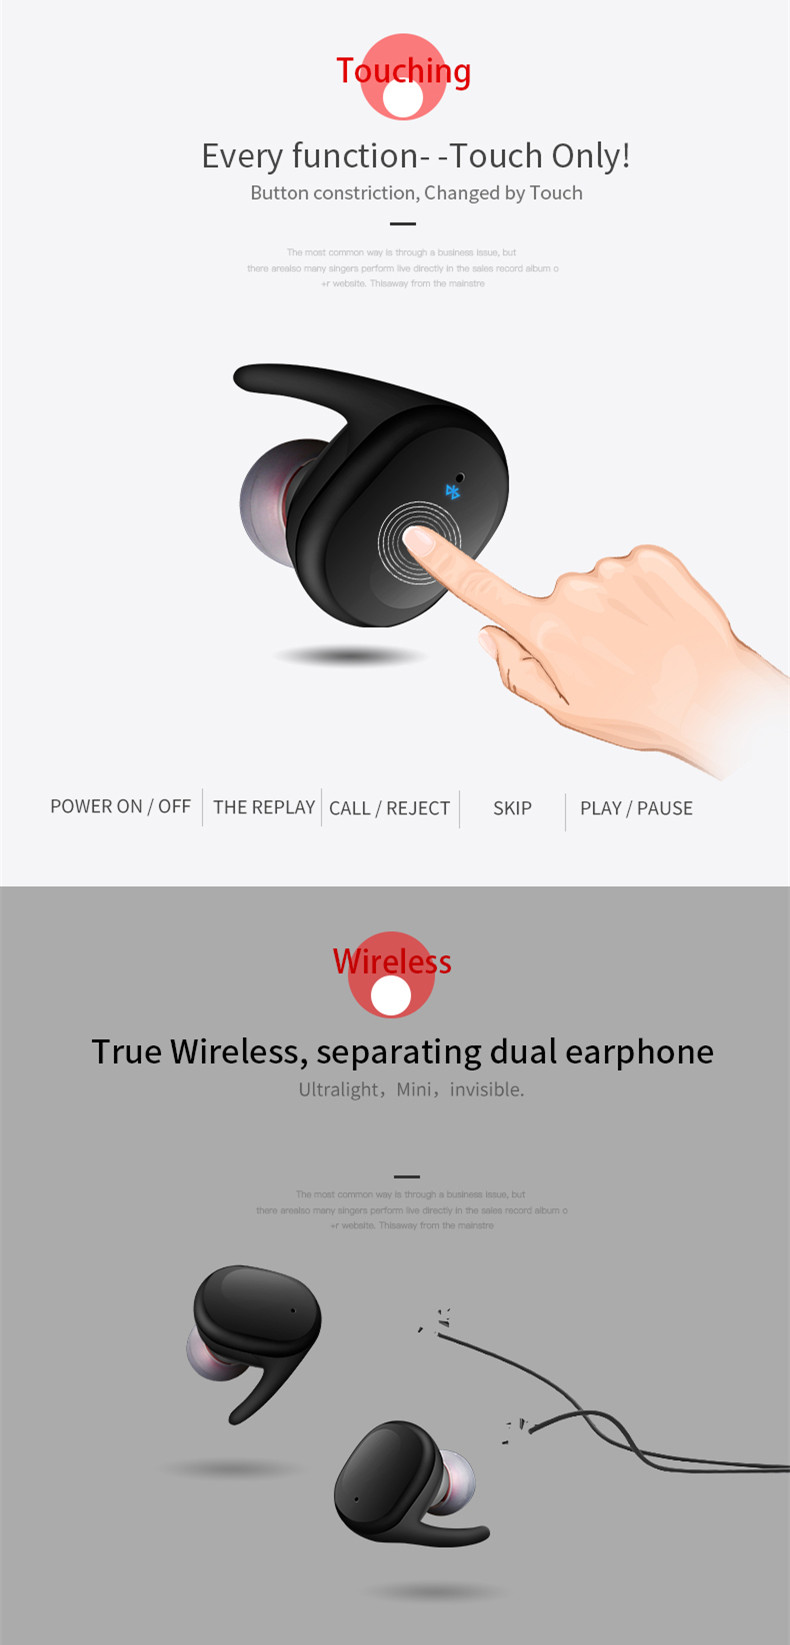 [Truly Wireless] Mini Stealth Stereo Wireless bluetooth Dual Earphone Headphones With Charging Box